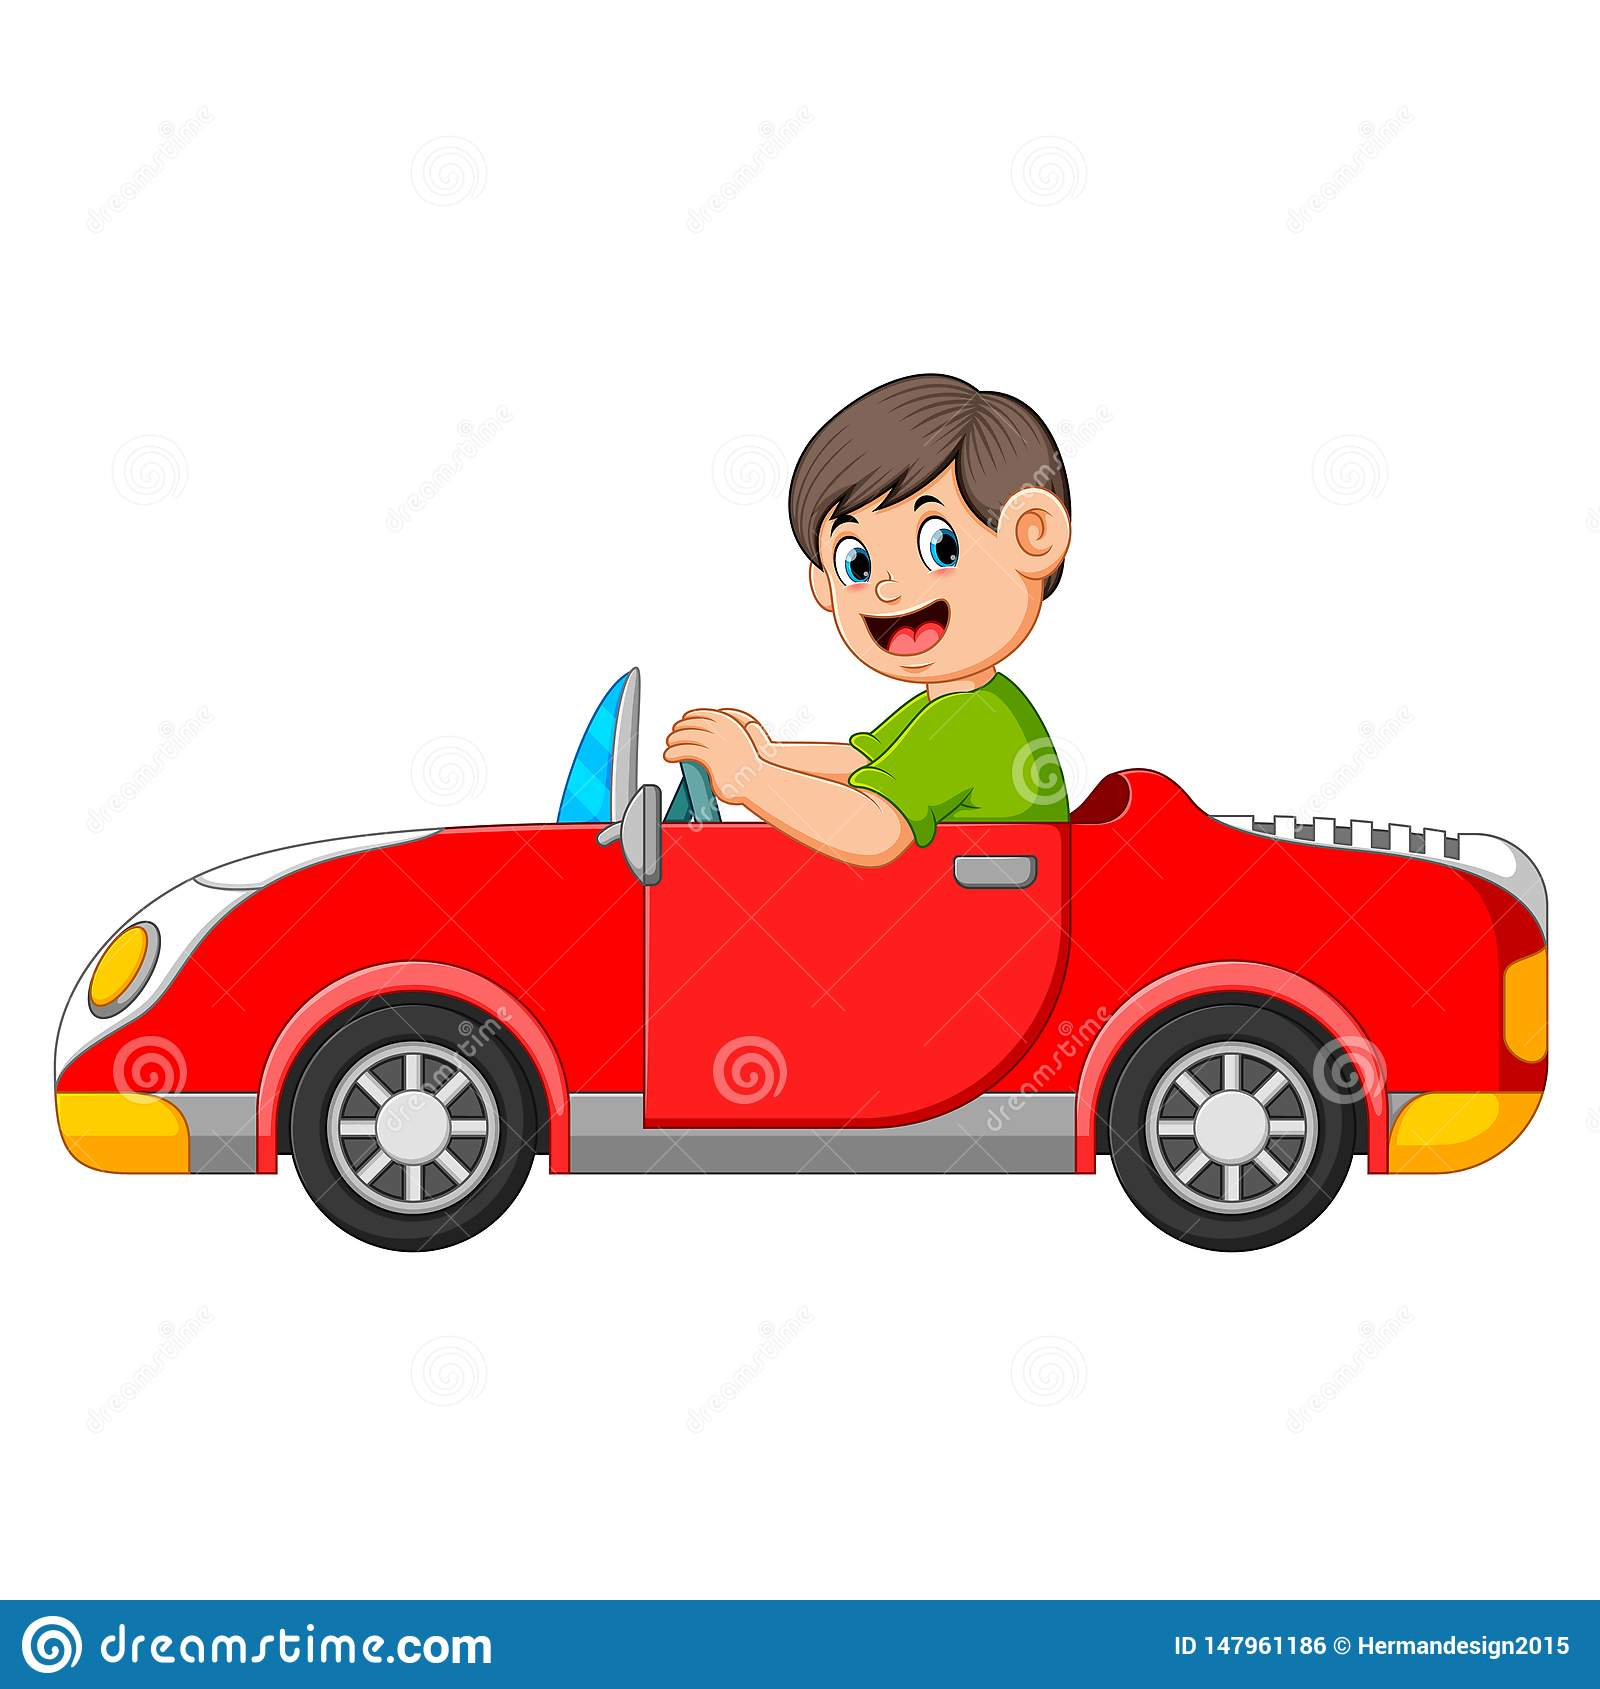 The boy is driving the red car with the good posing